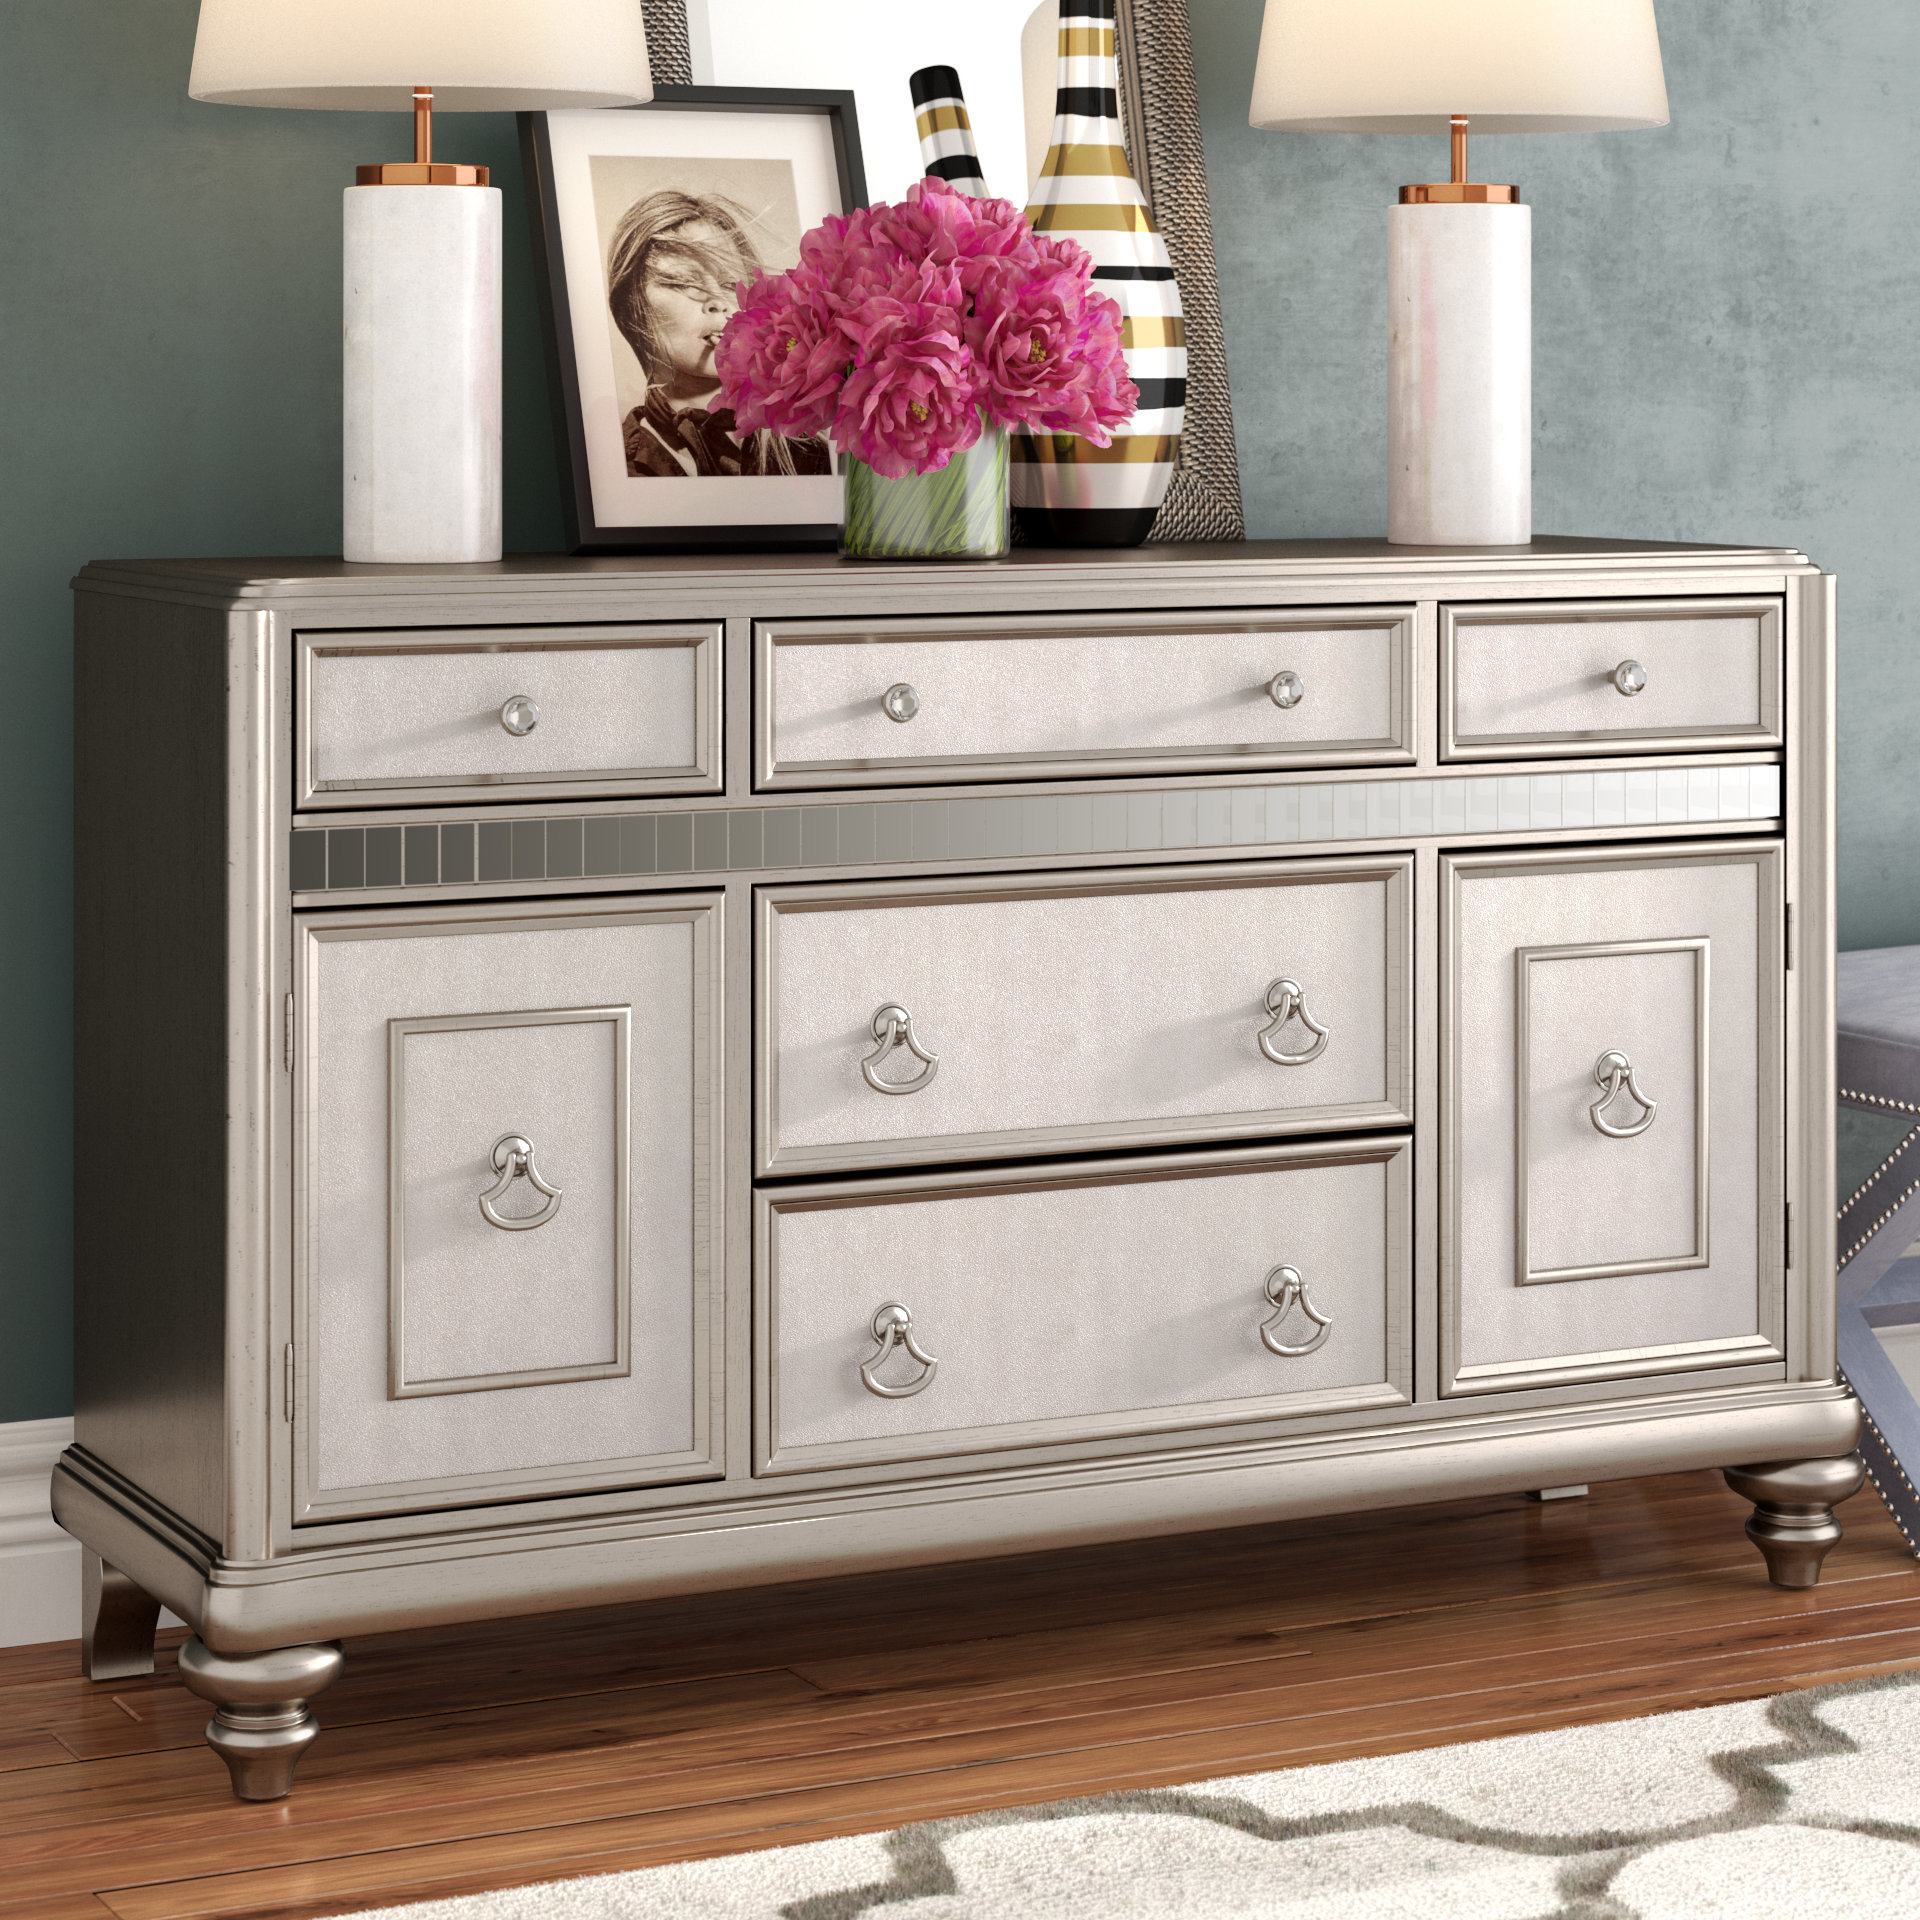 Emmaline Sideboards With 2020 Emmaline Sideboard (Gallery 1 of 20)